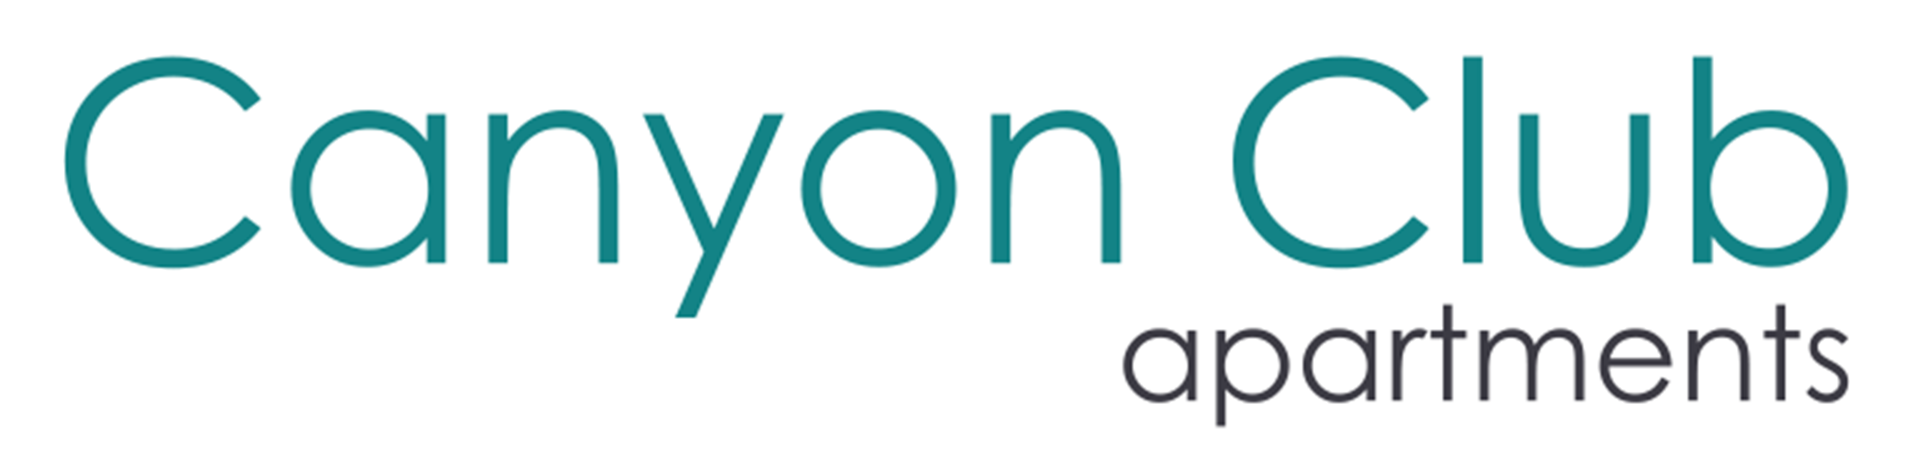 Canyon Club Apartments logo